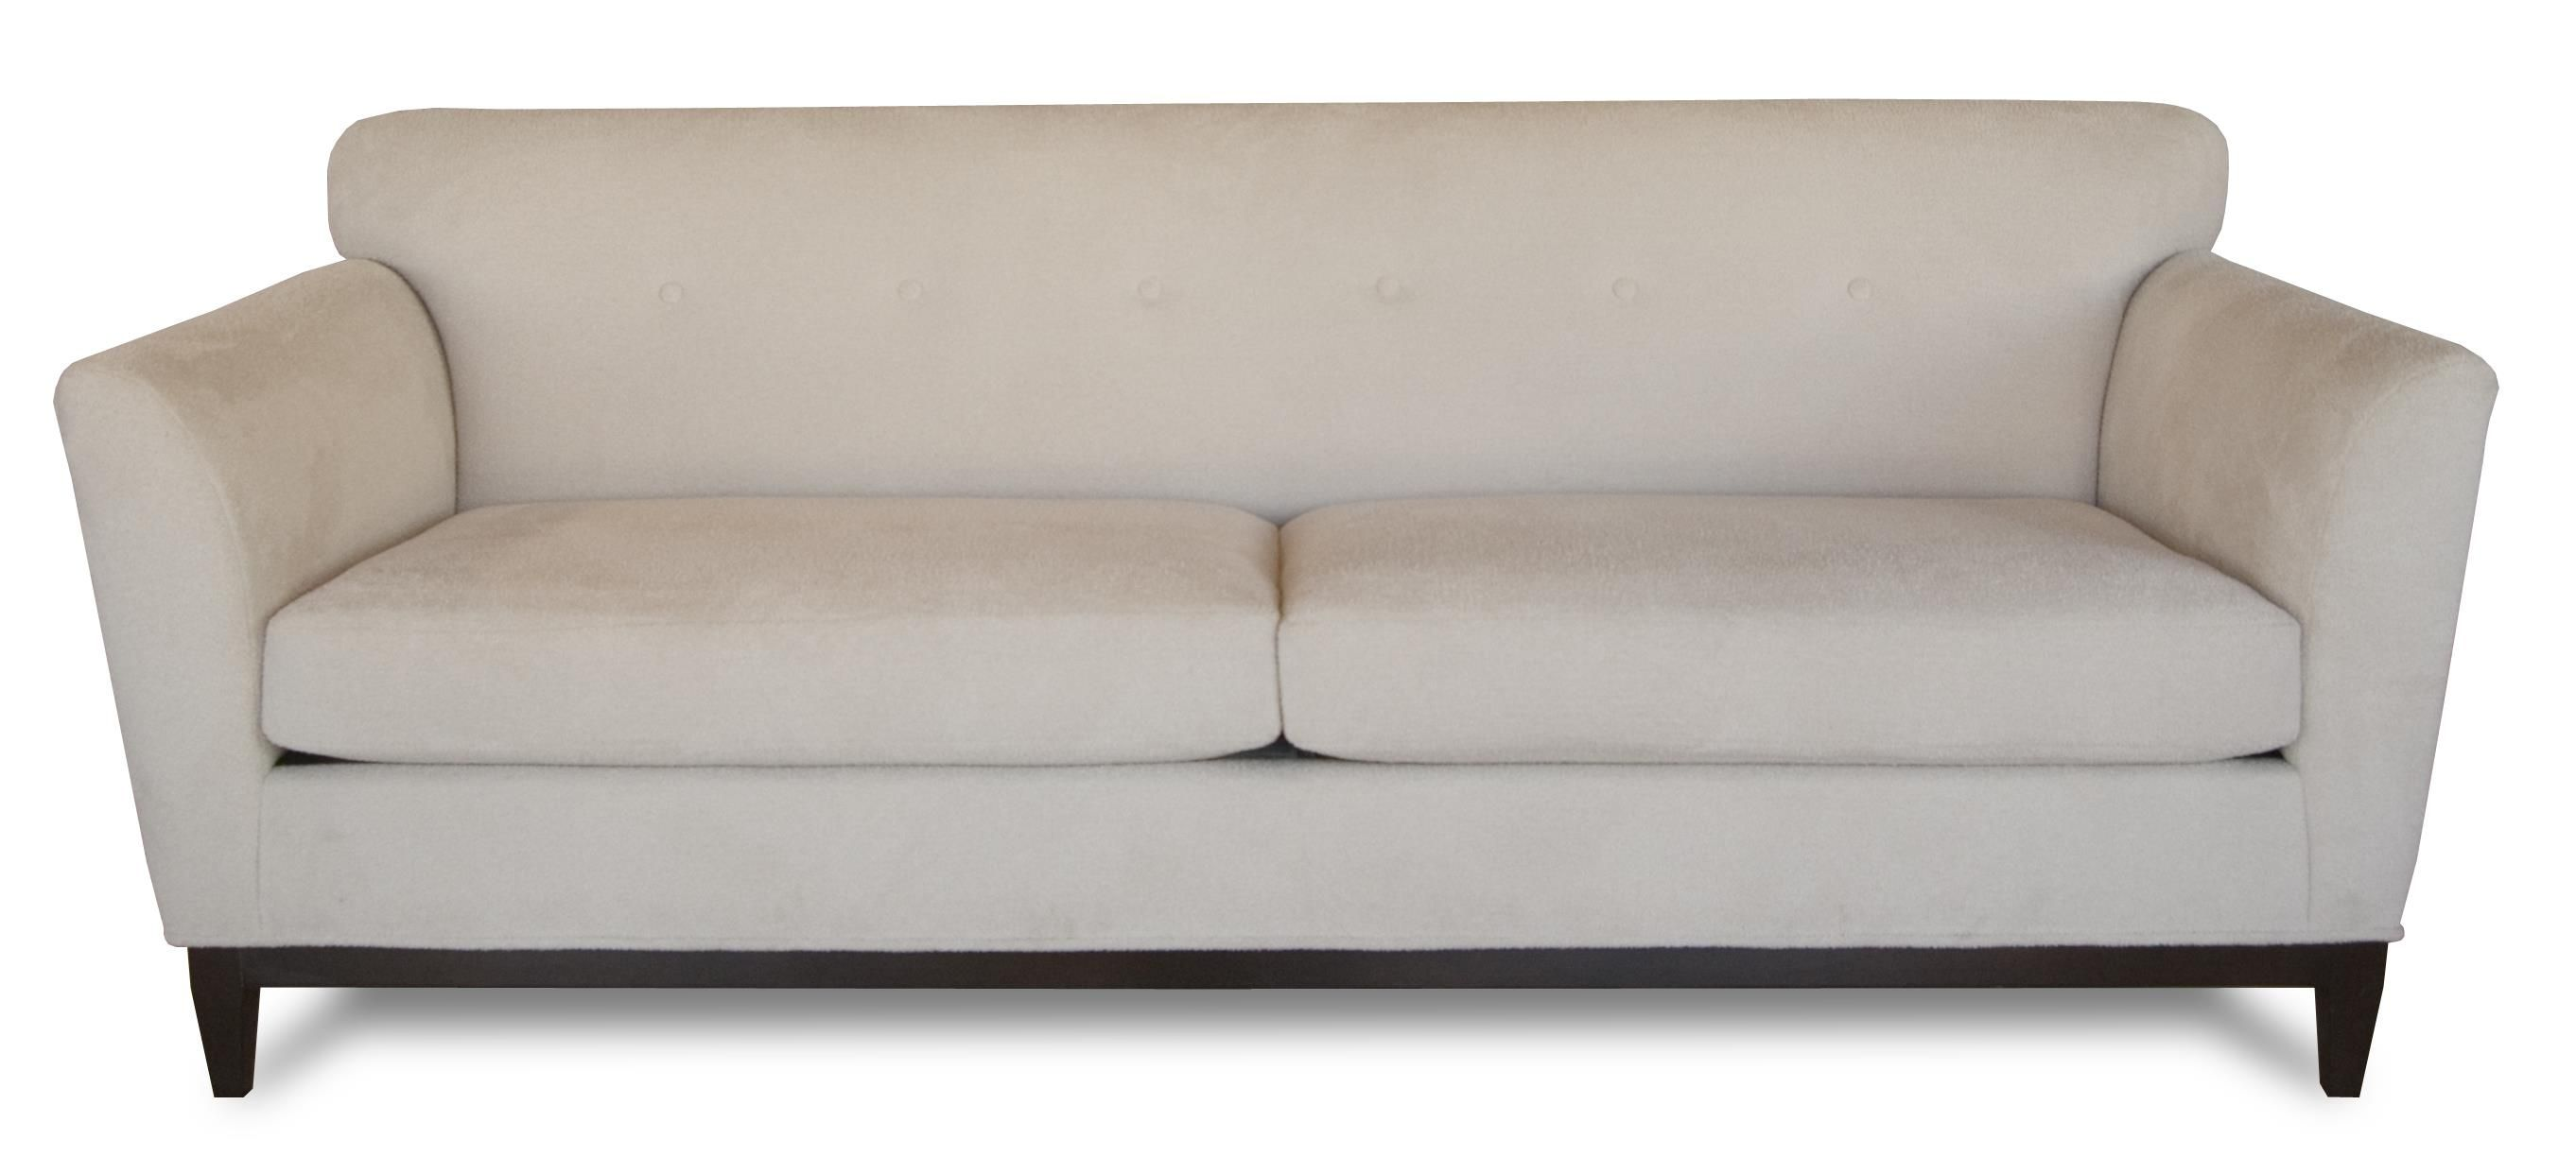 Devin   Sofas | Custom Sofa Sectional Couch | Los Angeles | The Sofa Company